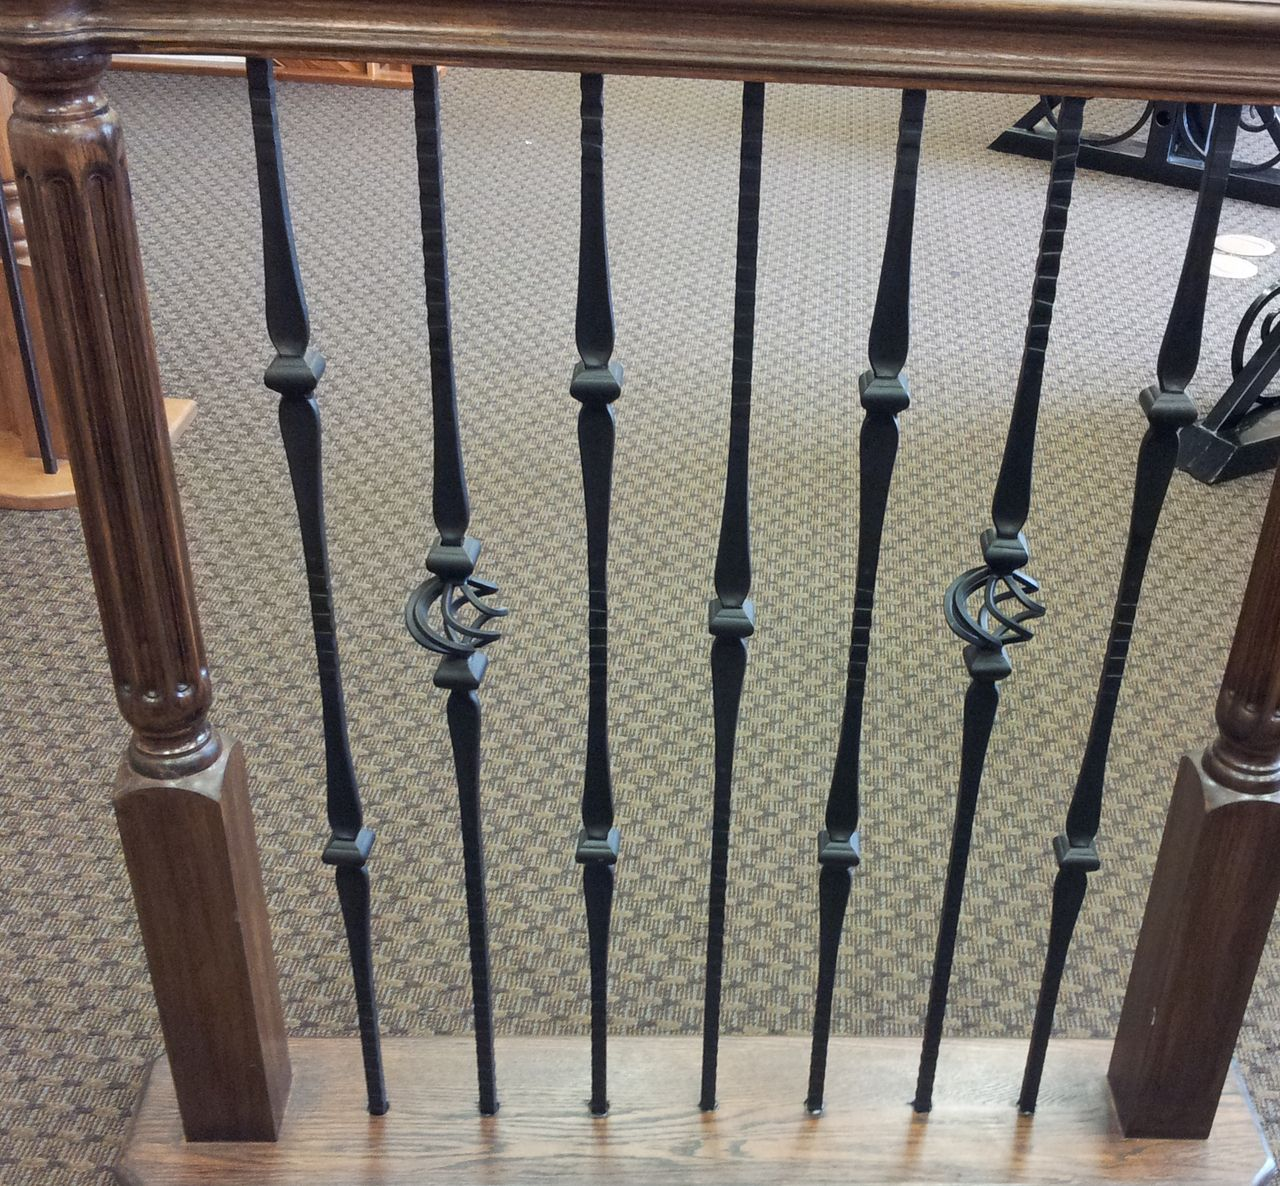 Best 16 1 8 Double Knuckle Square Face Hammered Iron Baluster 400 x 300